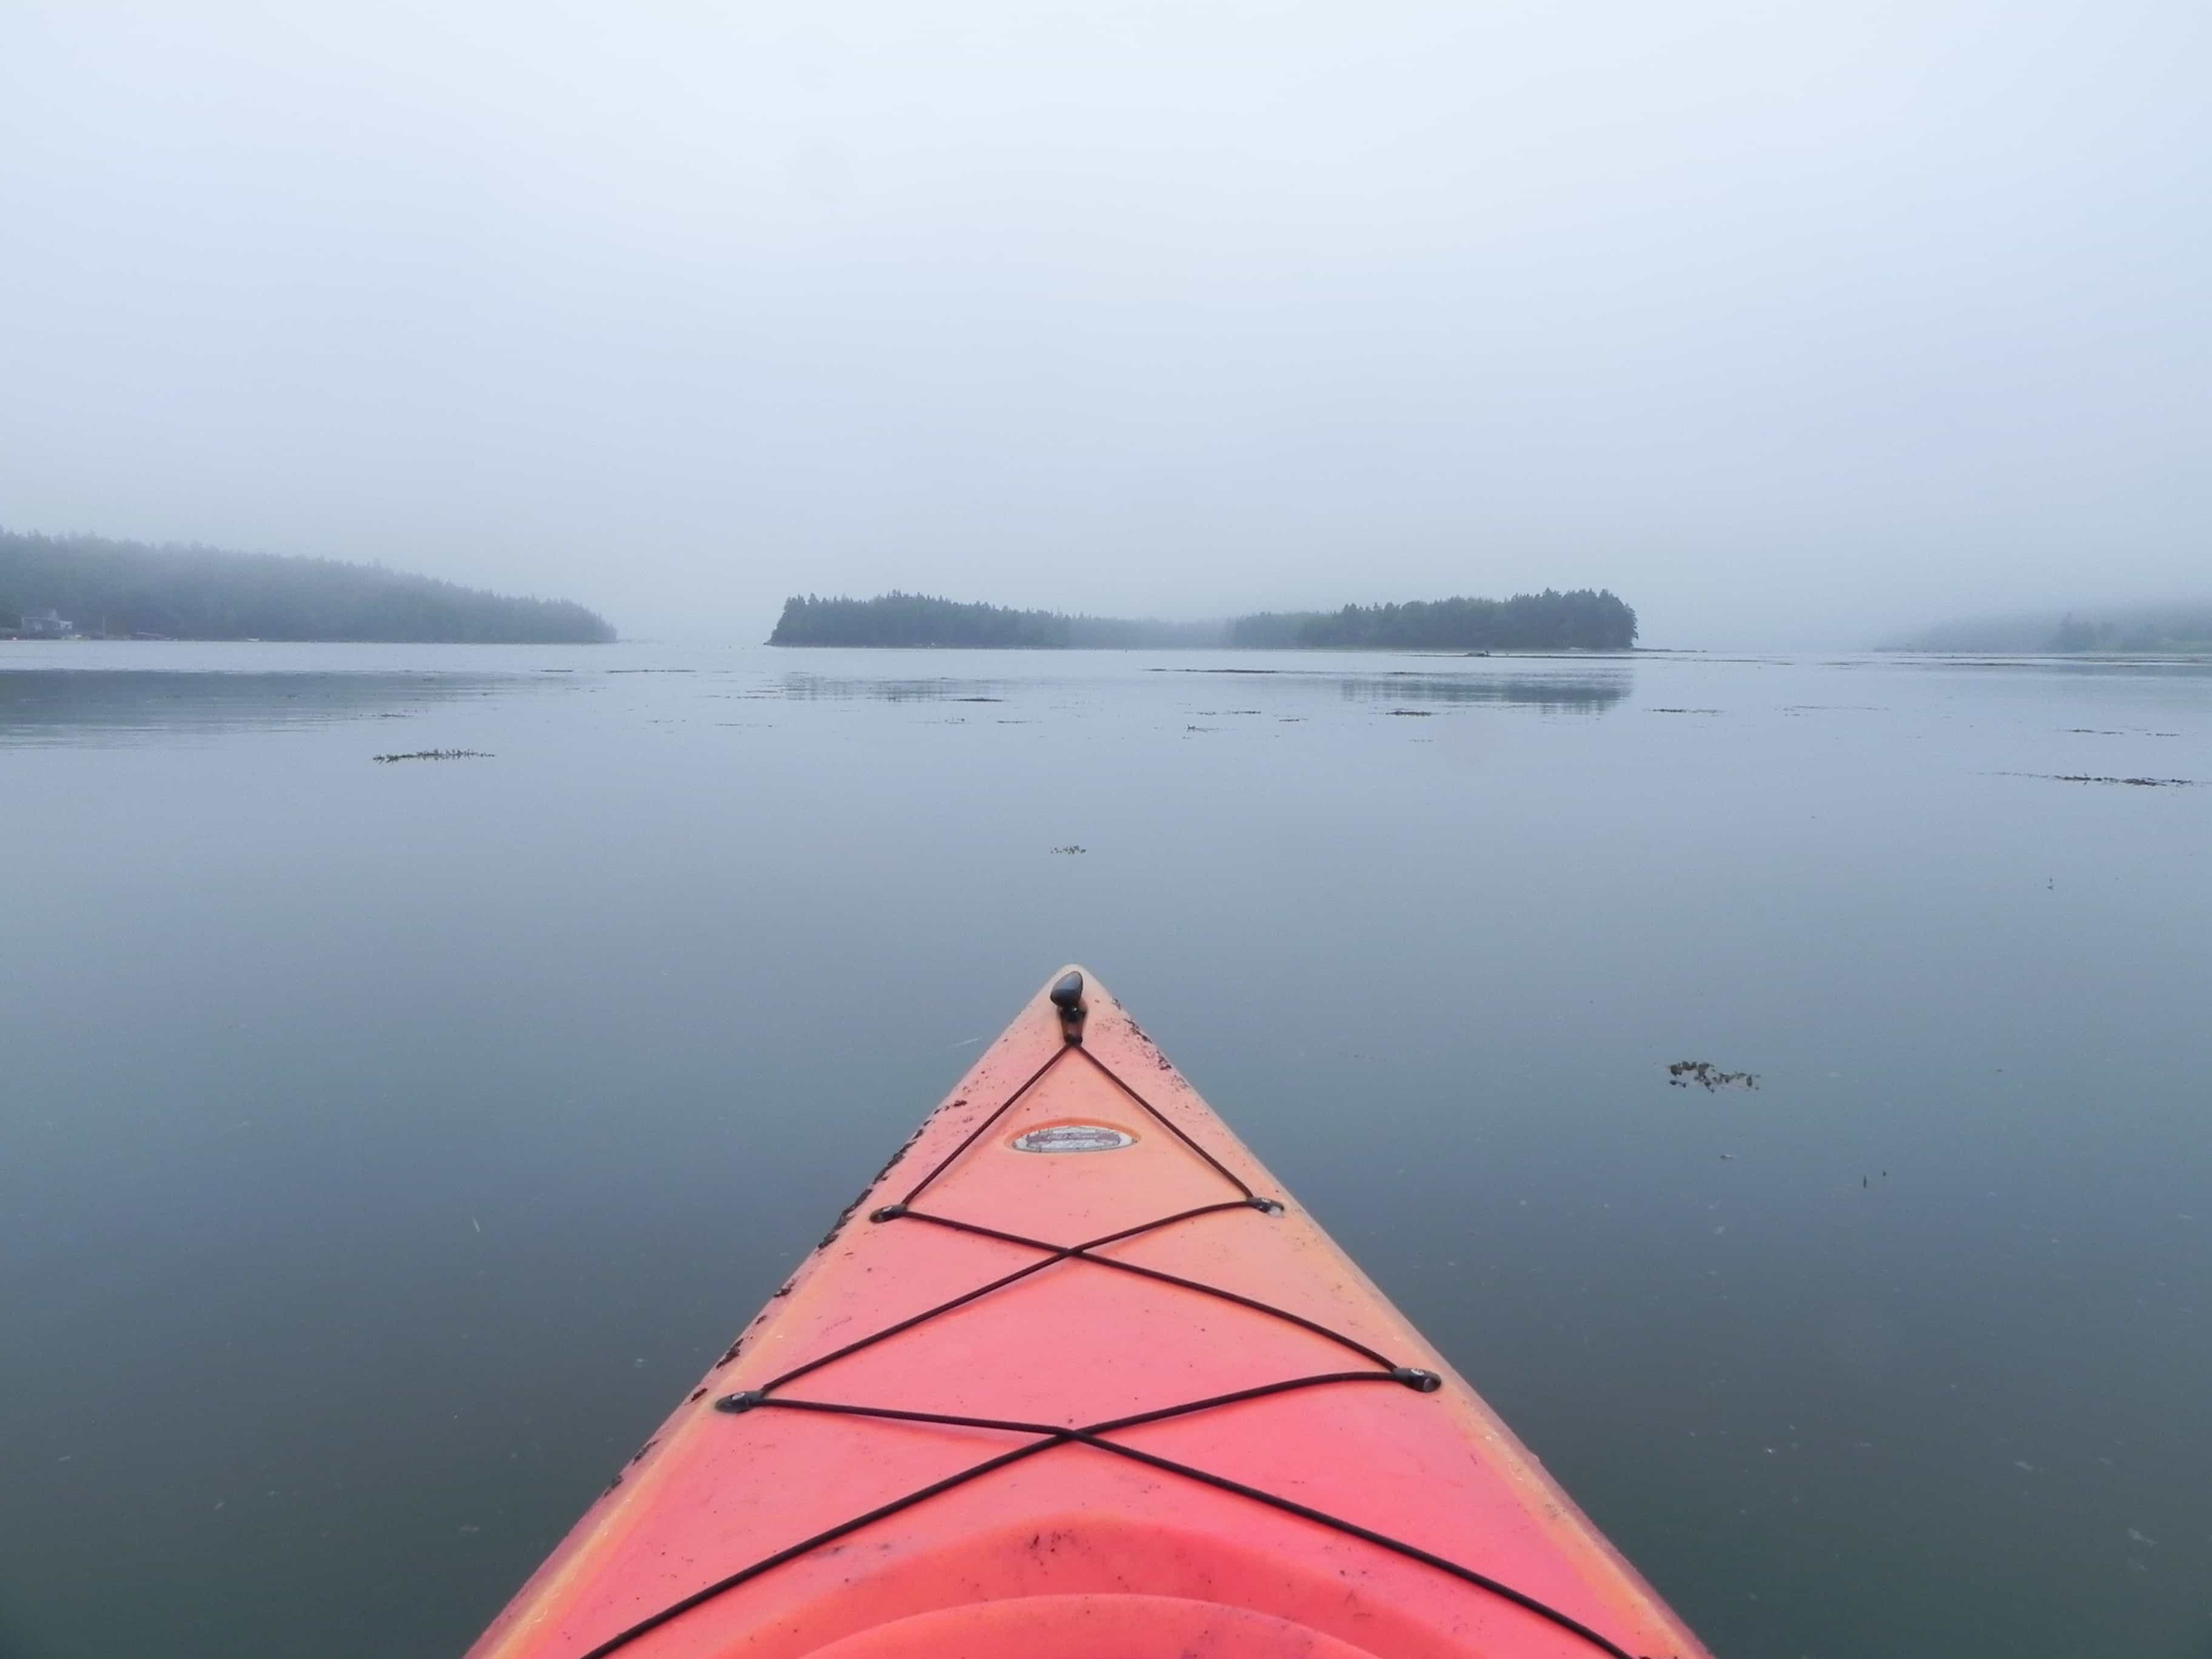 kayak-in-the-mist